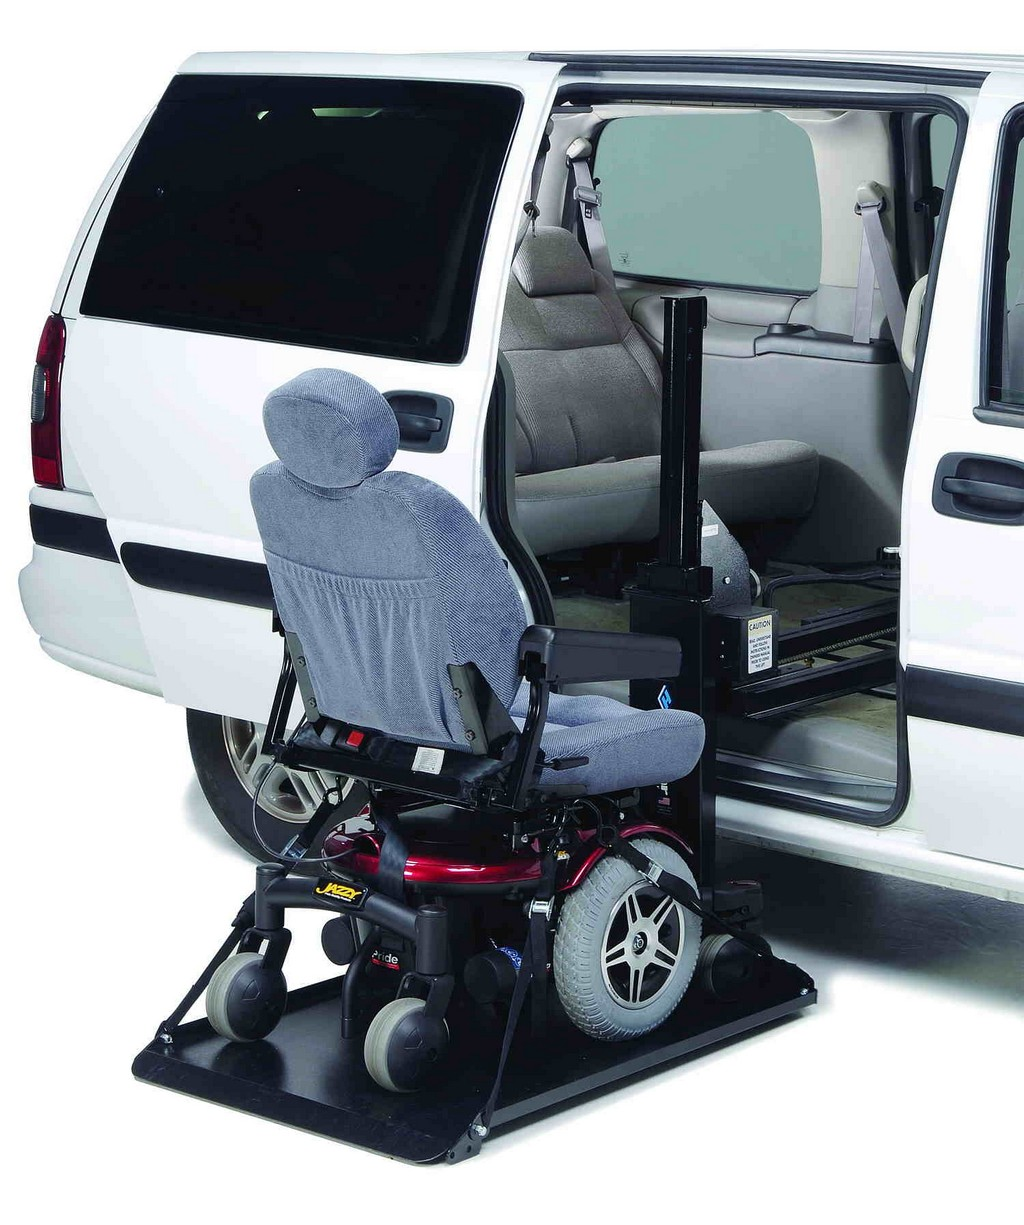 KlearVue Wheelchair Lift in a white van with wheelchair on